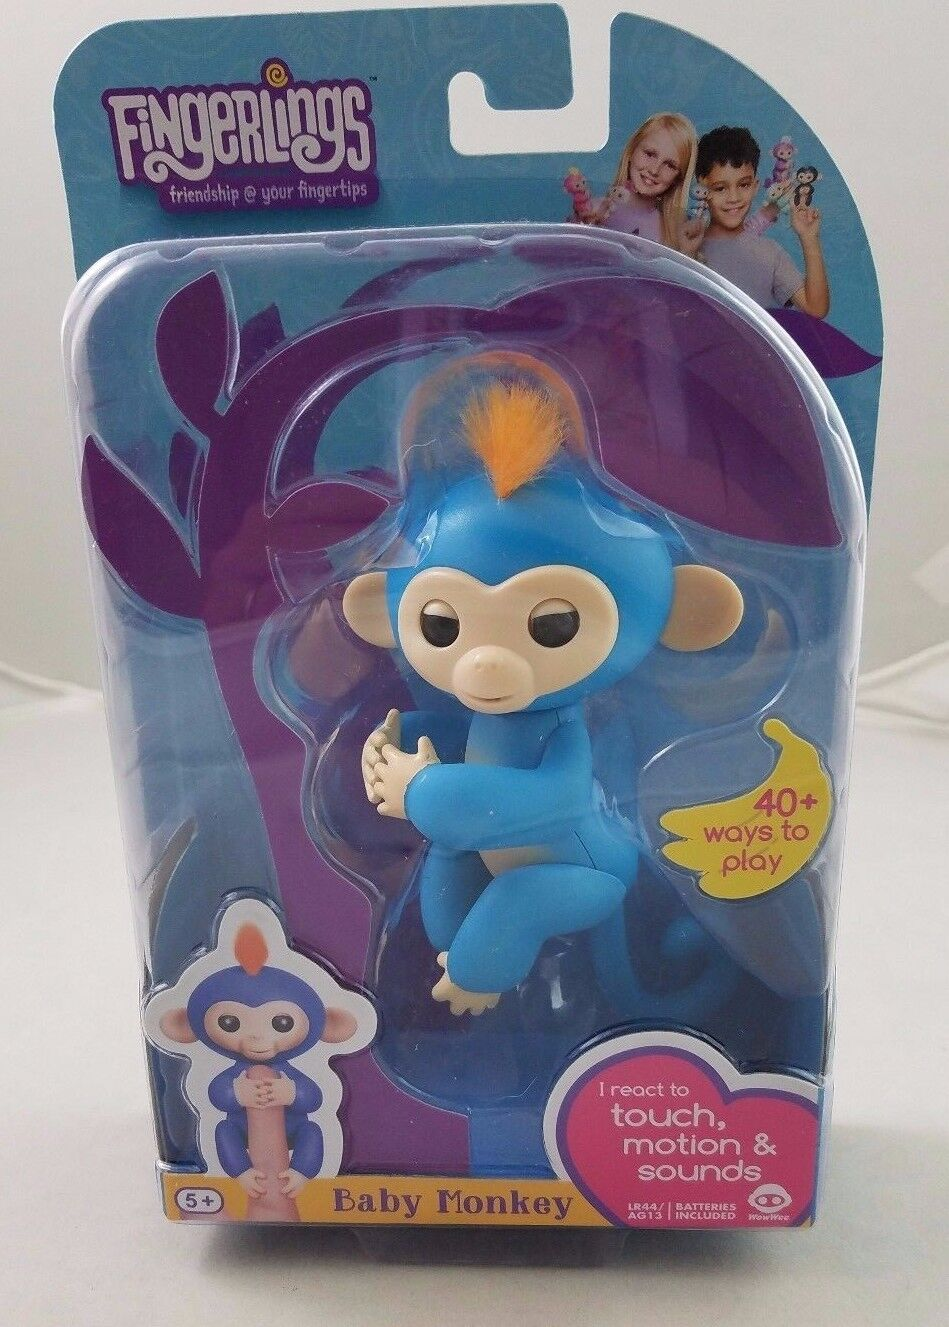 Fingerlings Baby Interactive Monkey Boris bluee 40 Sounds Finger Toy Authentic